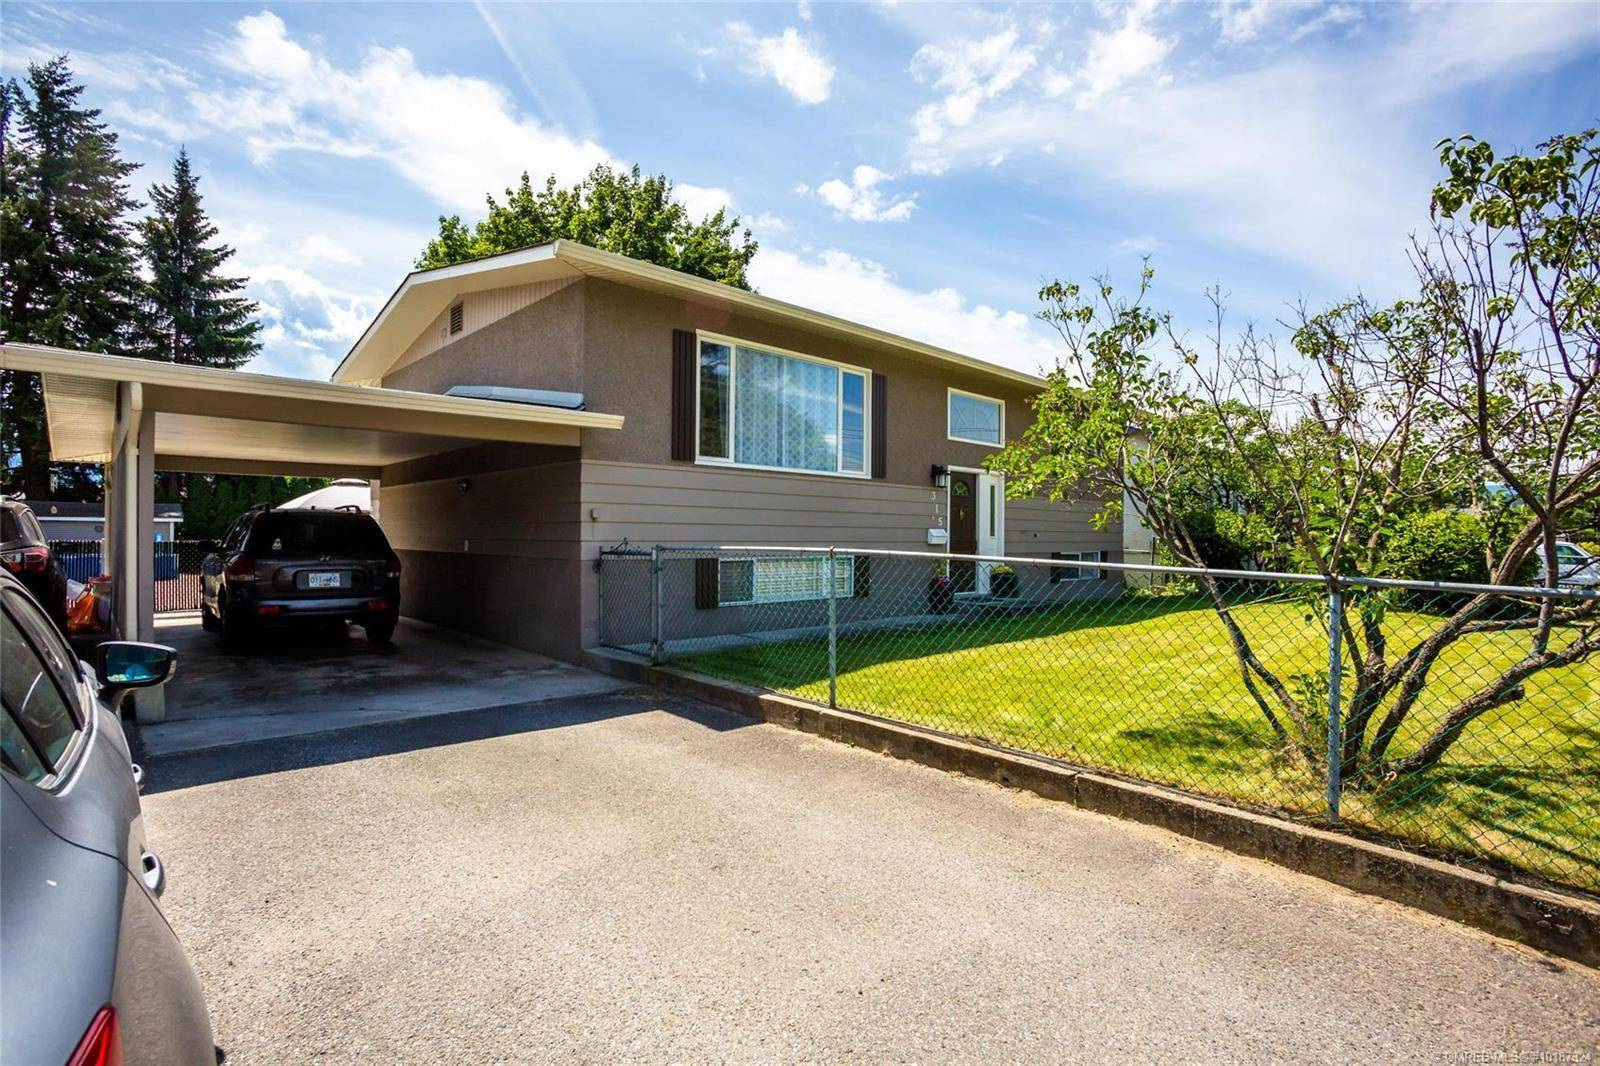 House for sale at 315 Mccurdy Rd Kelowna British Columbia - MLS: 10187324